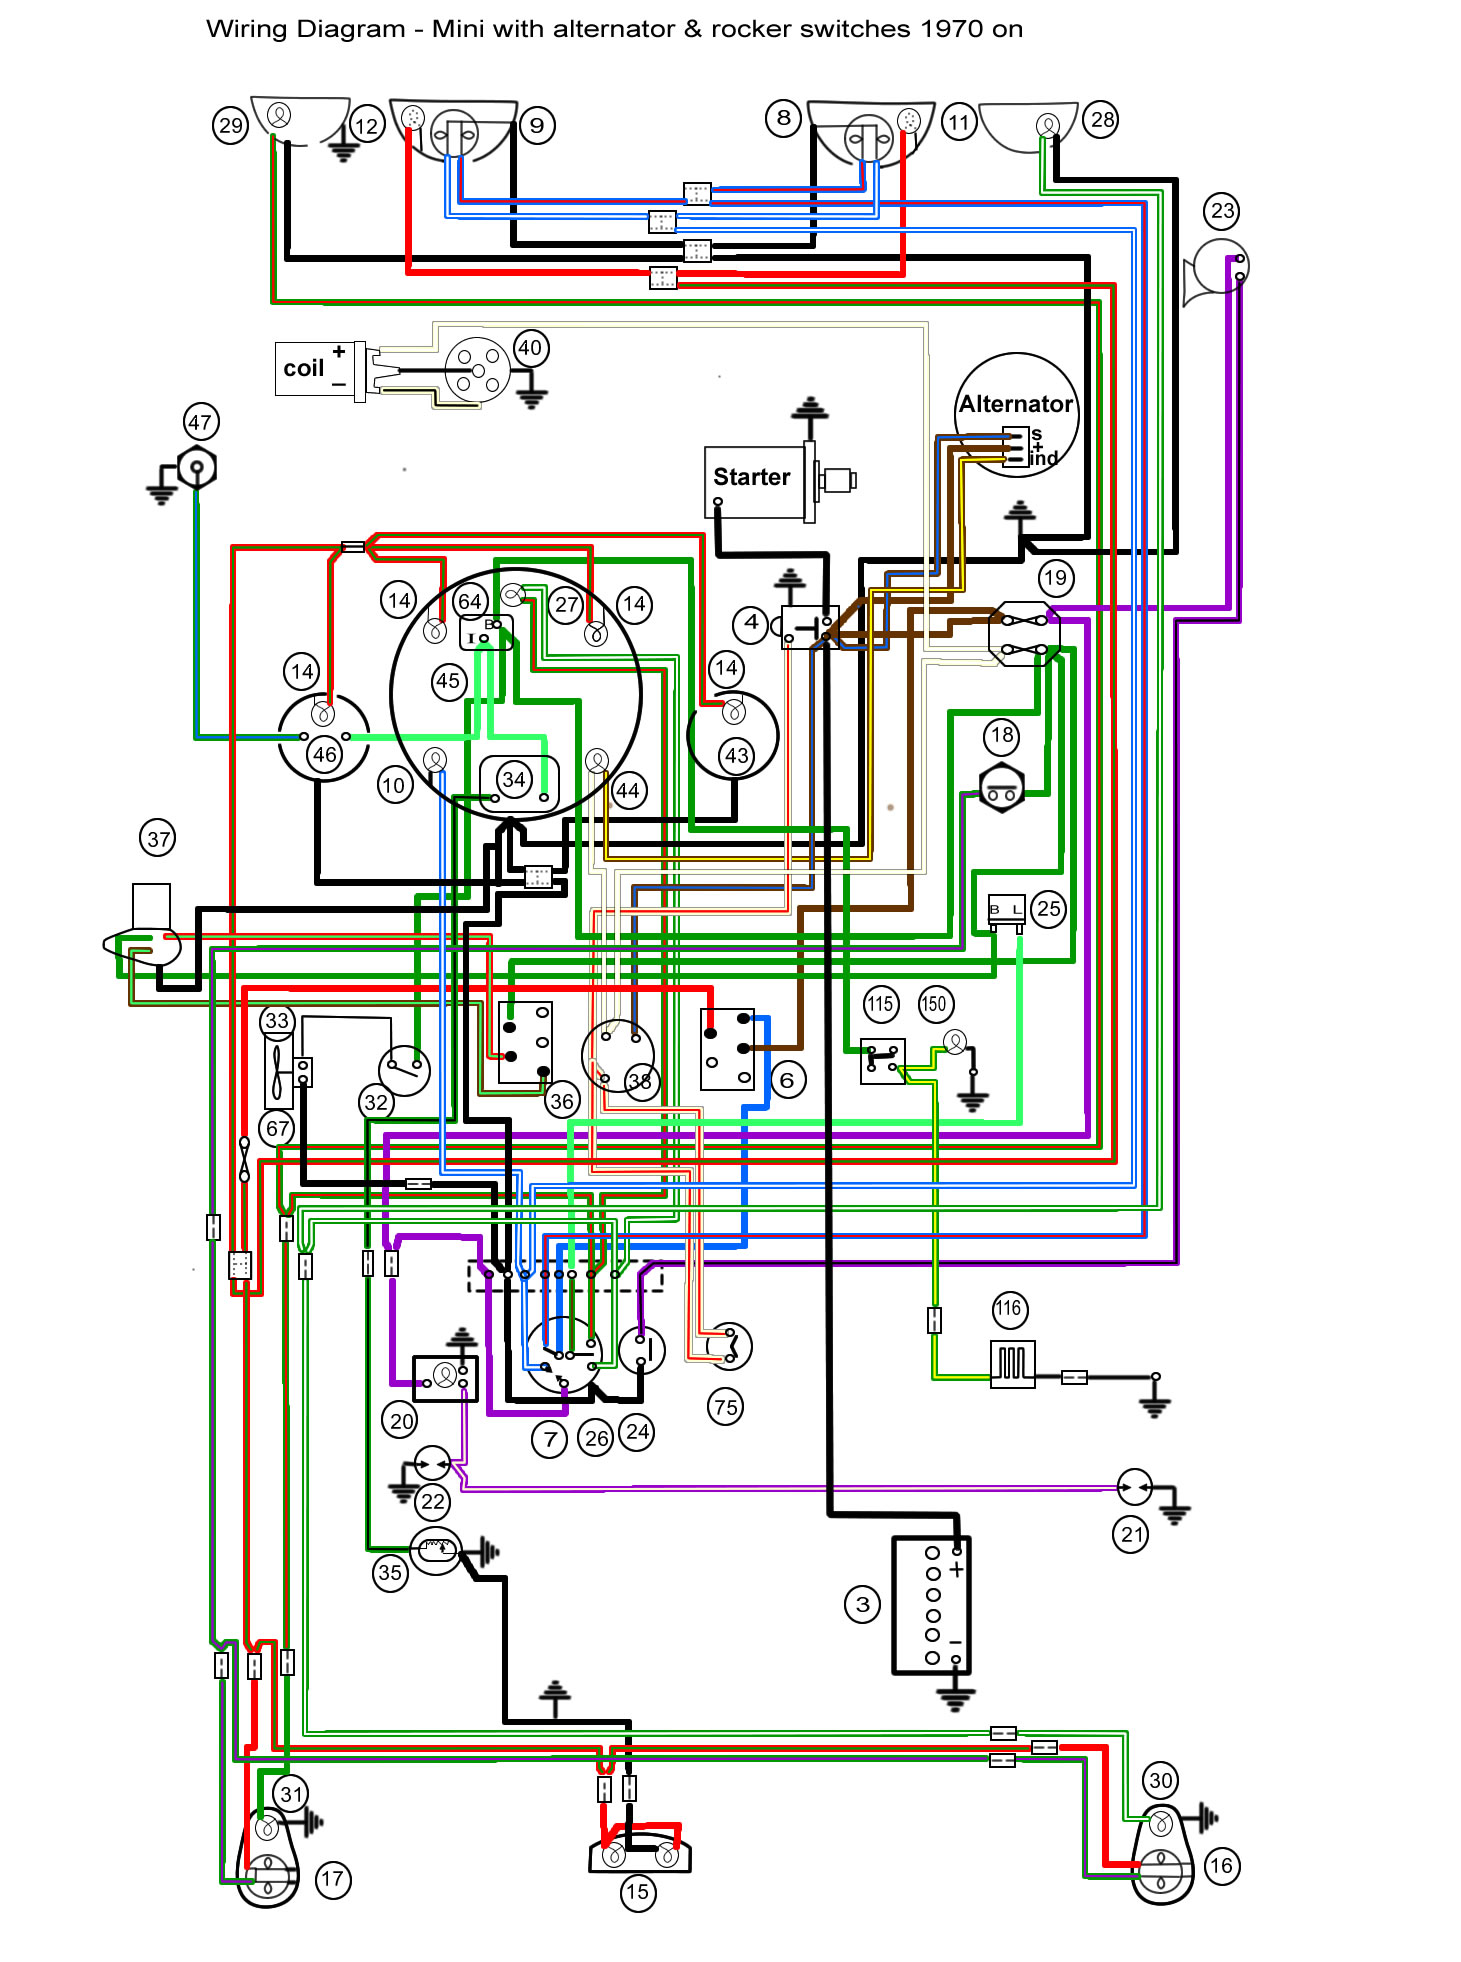 bmw e46 wiring harness diagram bmw e46 wiring harness diagram bmw e46 wiring harness diagram bmw e46 wiring harness diagram bmw bmw e46 radio wiring